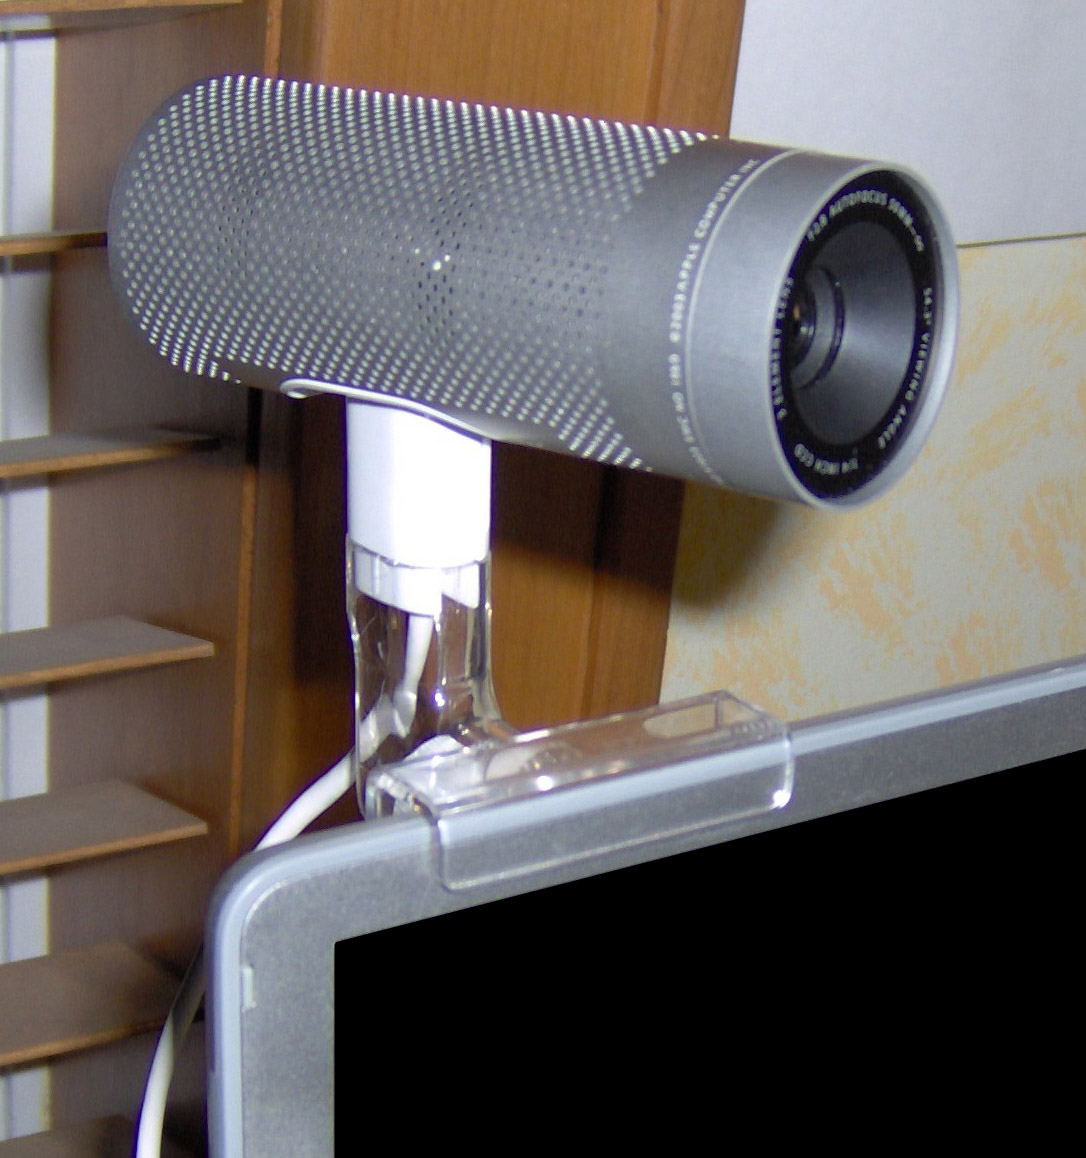 File:ISight-mounted-on-PowerBook.jpg - Wikimedia Commons